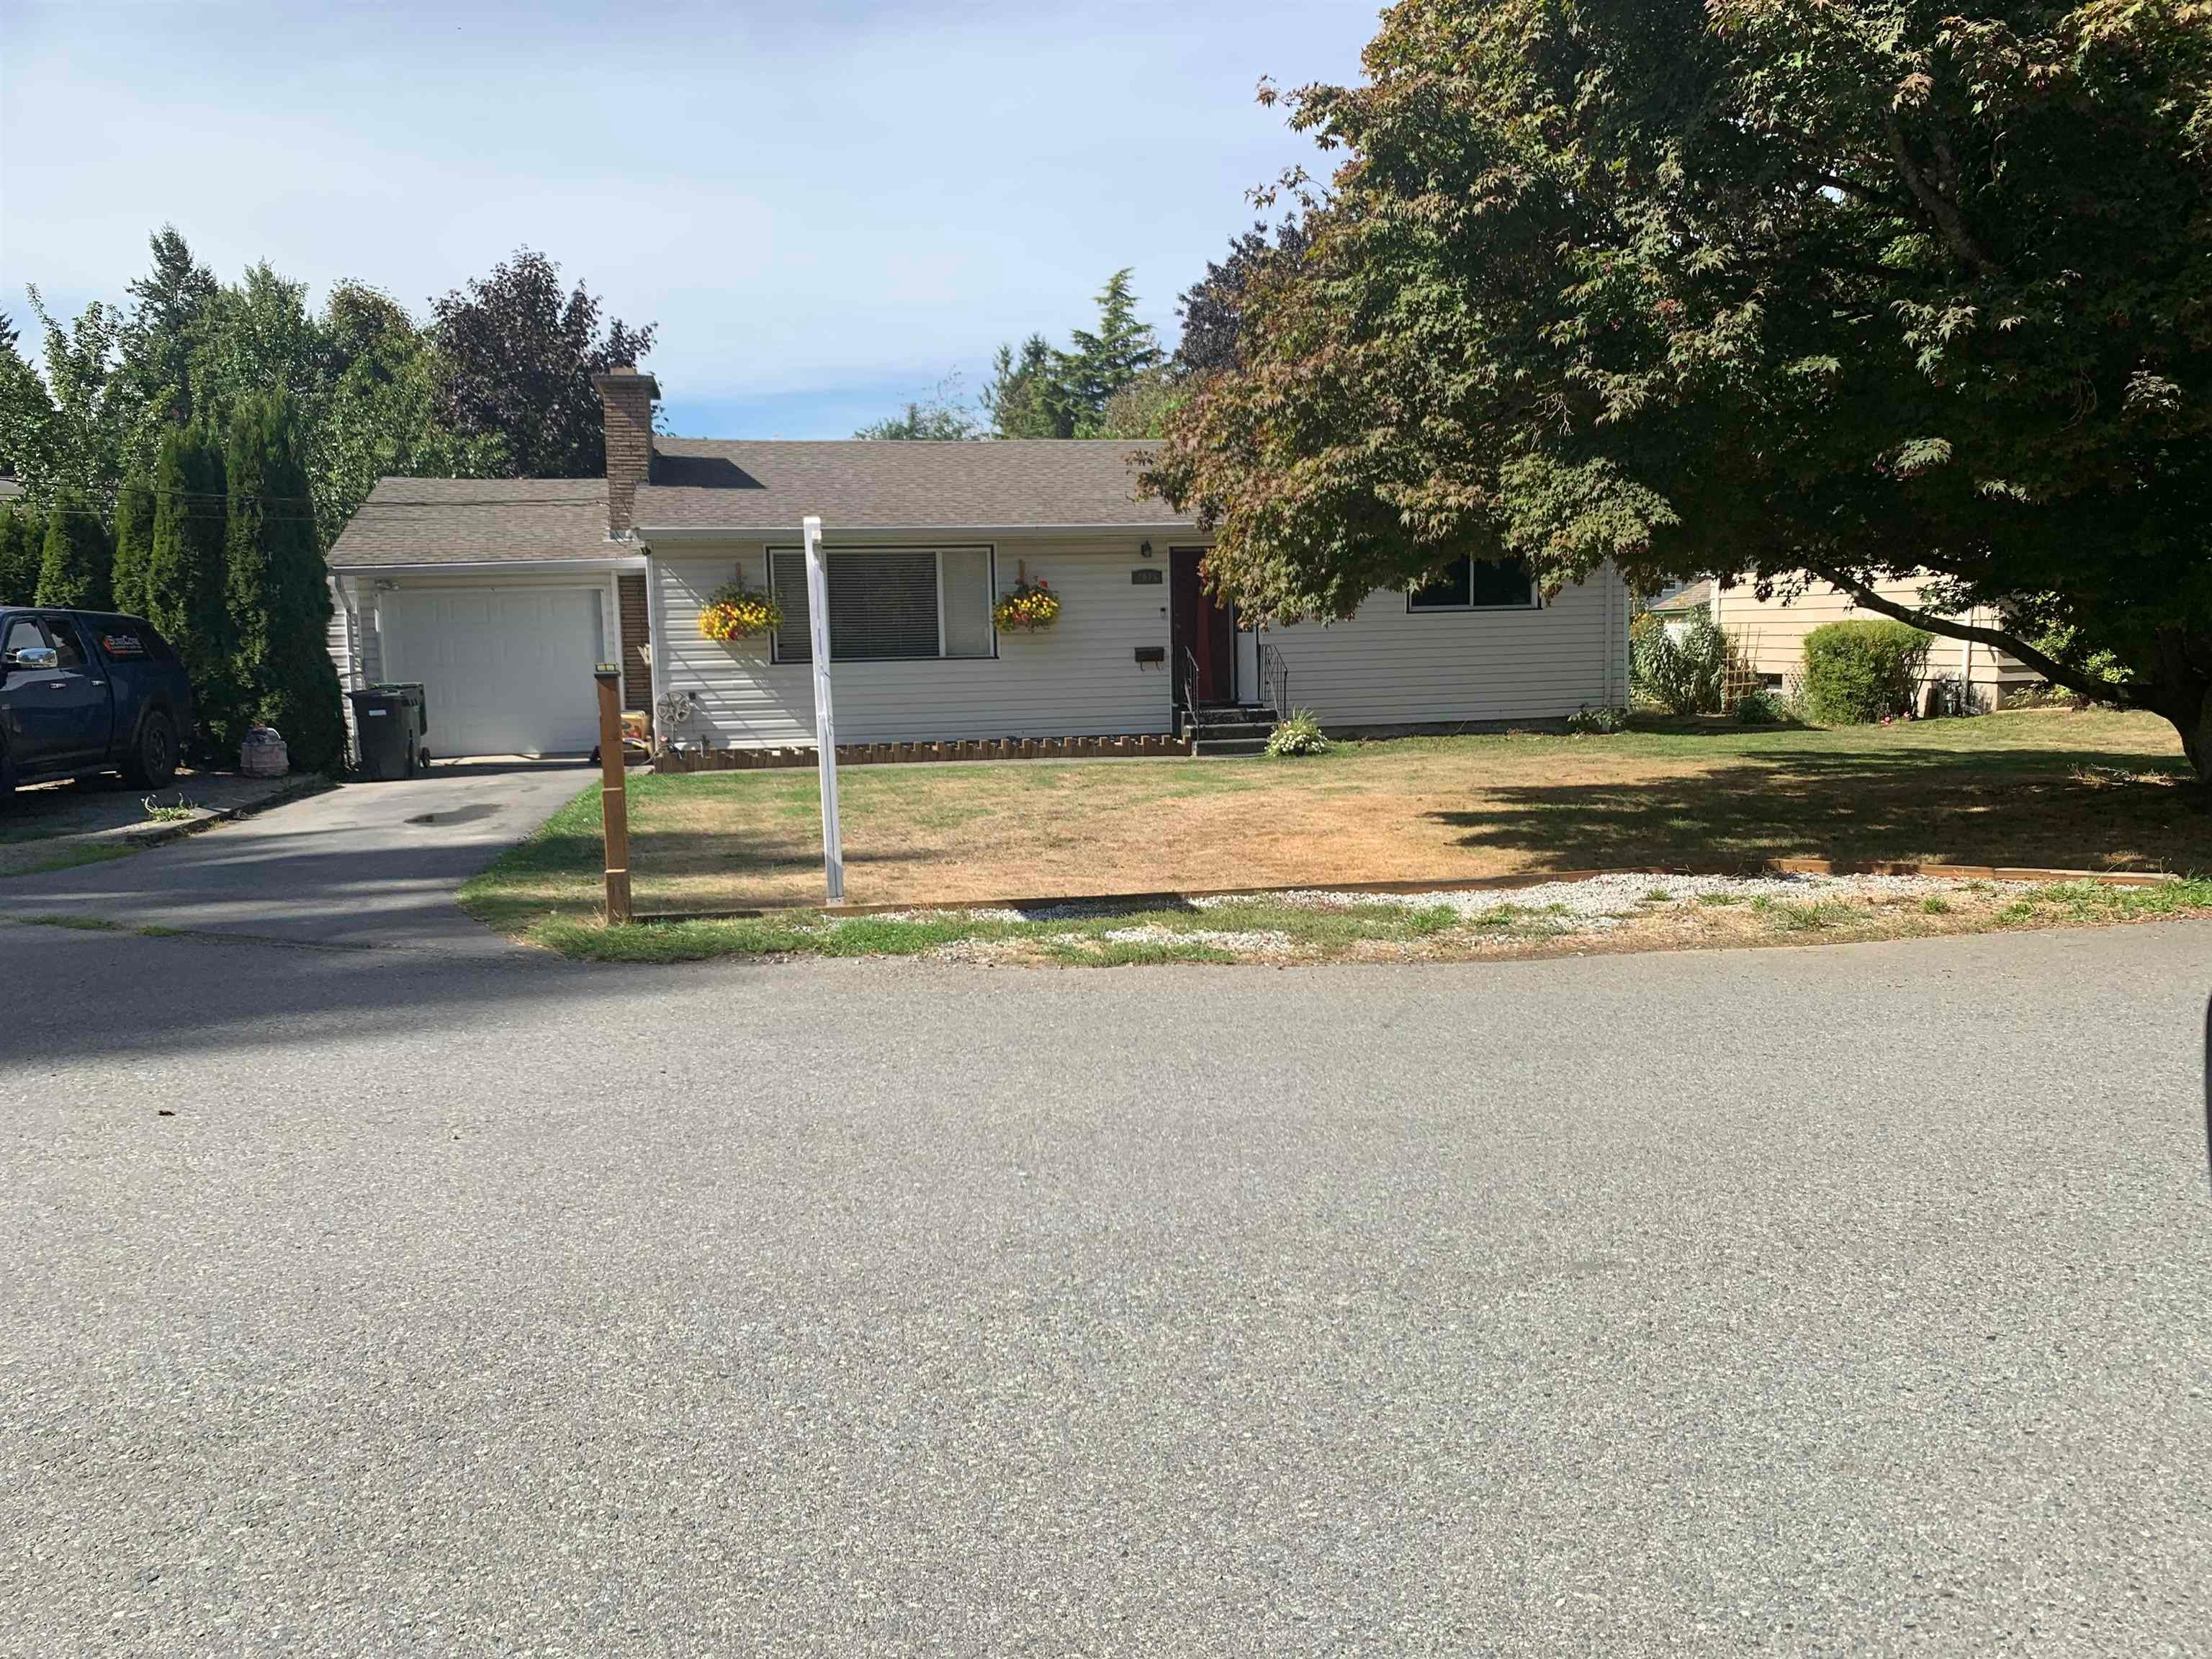 2075 WILLOW STREET - Central Abbotsford House/Single Family for sale, 5 Bedrooms (R2616161) - #13